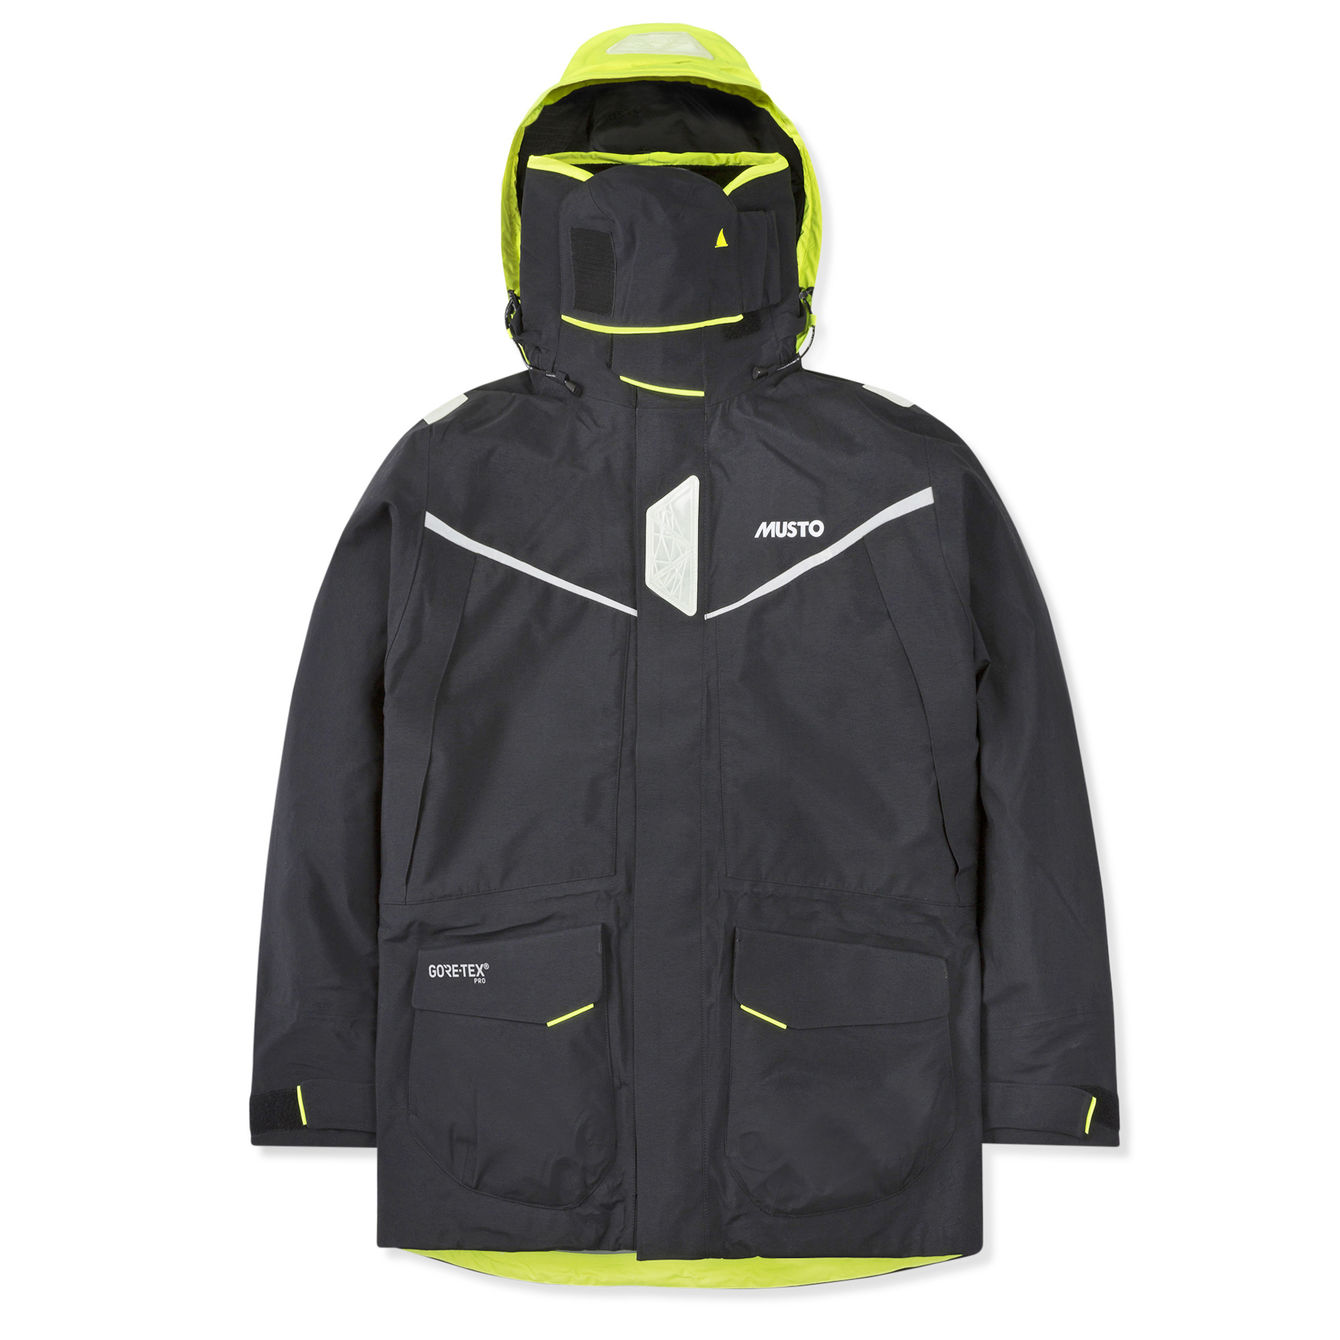 MPX GTX PRO OFFSHORE JACKET